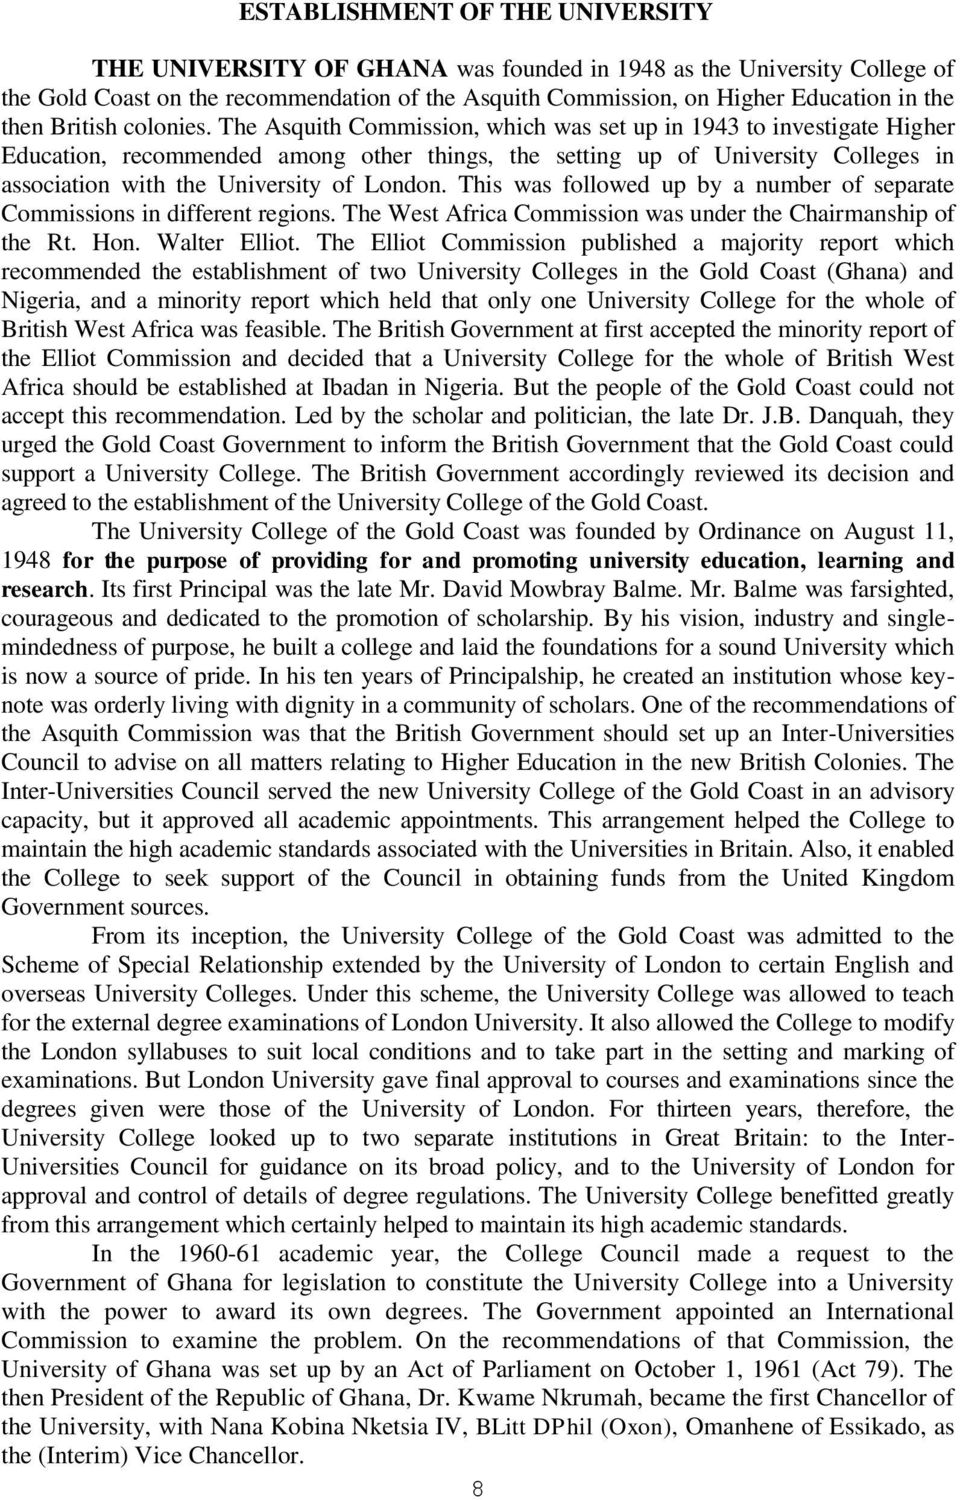 The Asquith Commission, which was set up in 1943 to investigate Higher Education, recommended among other things, the setting up of University Colleges in association with the University of London.